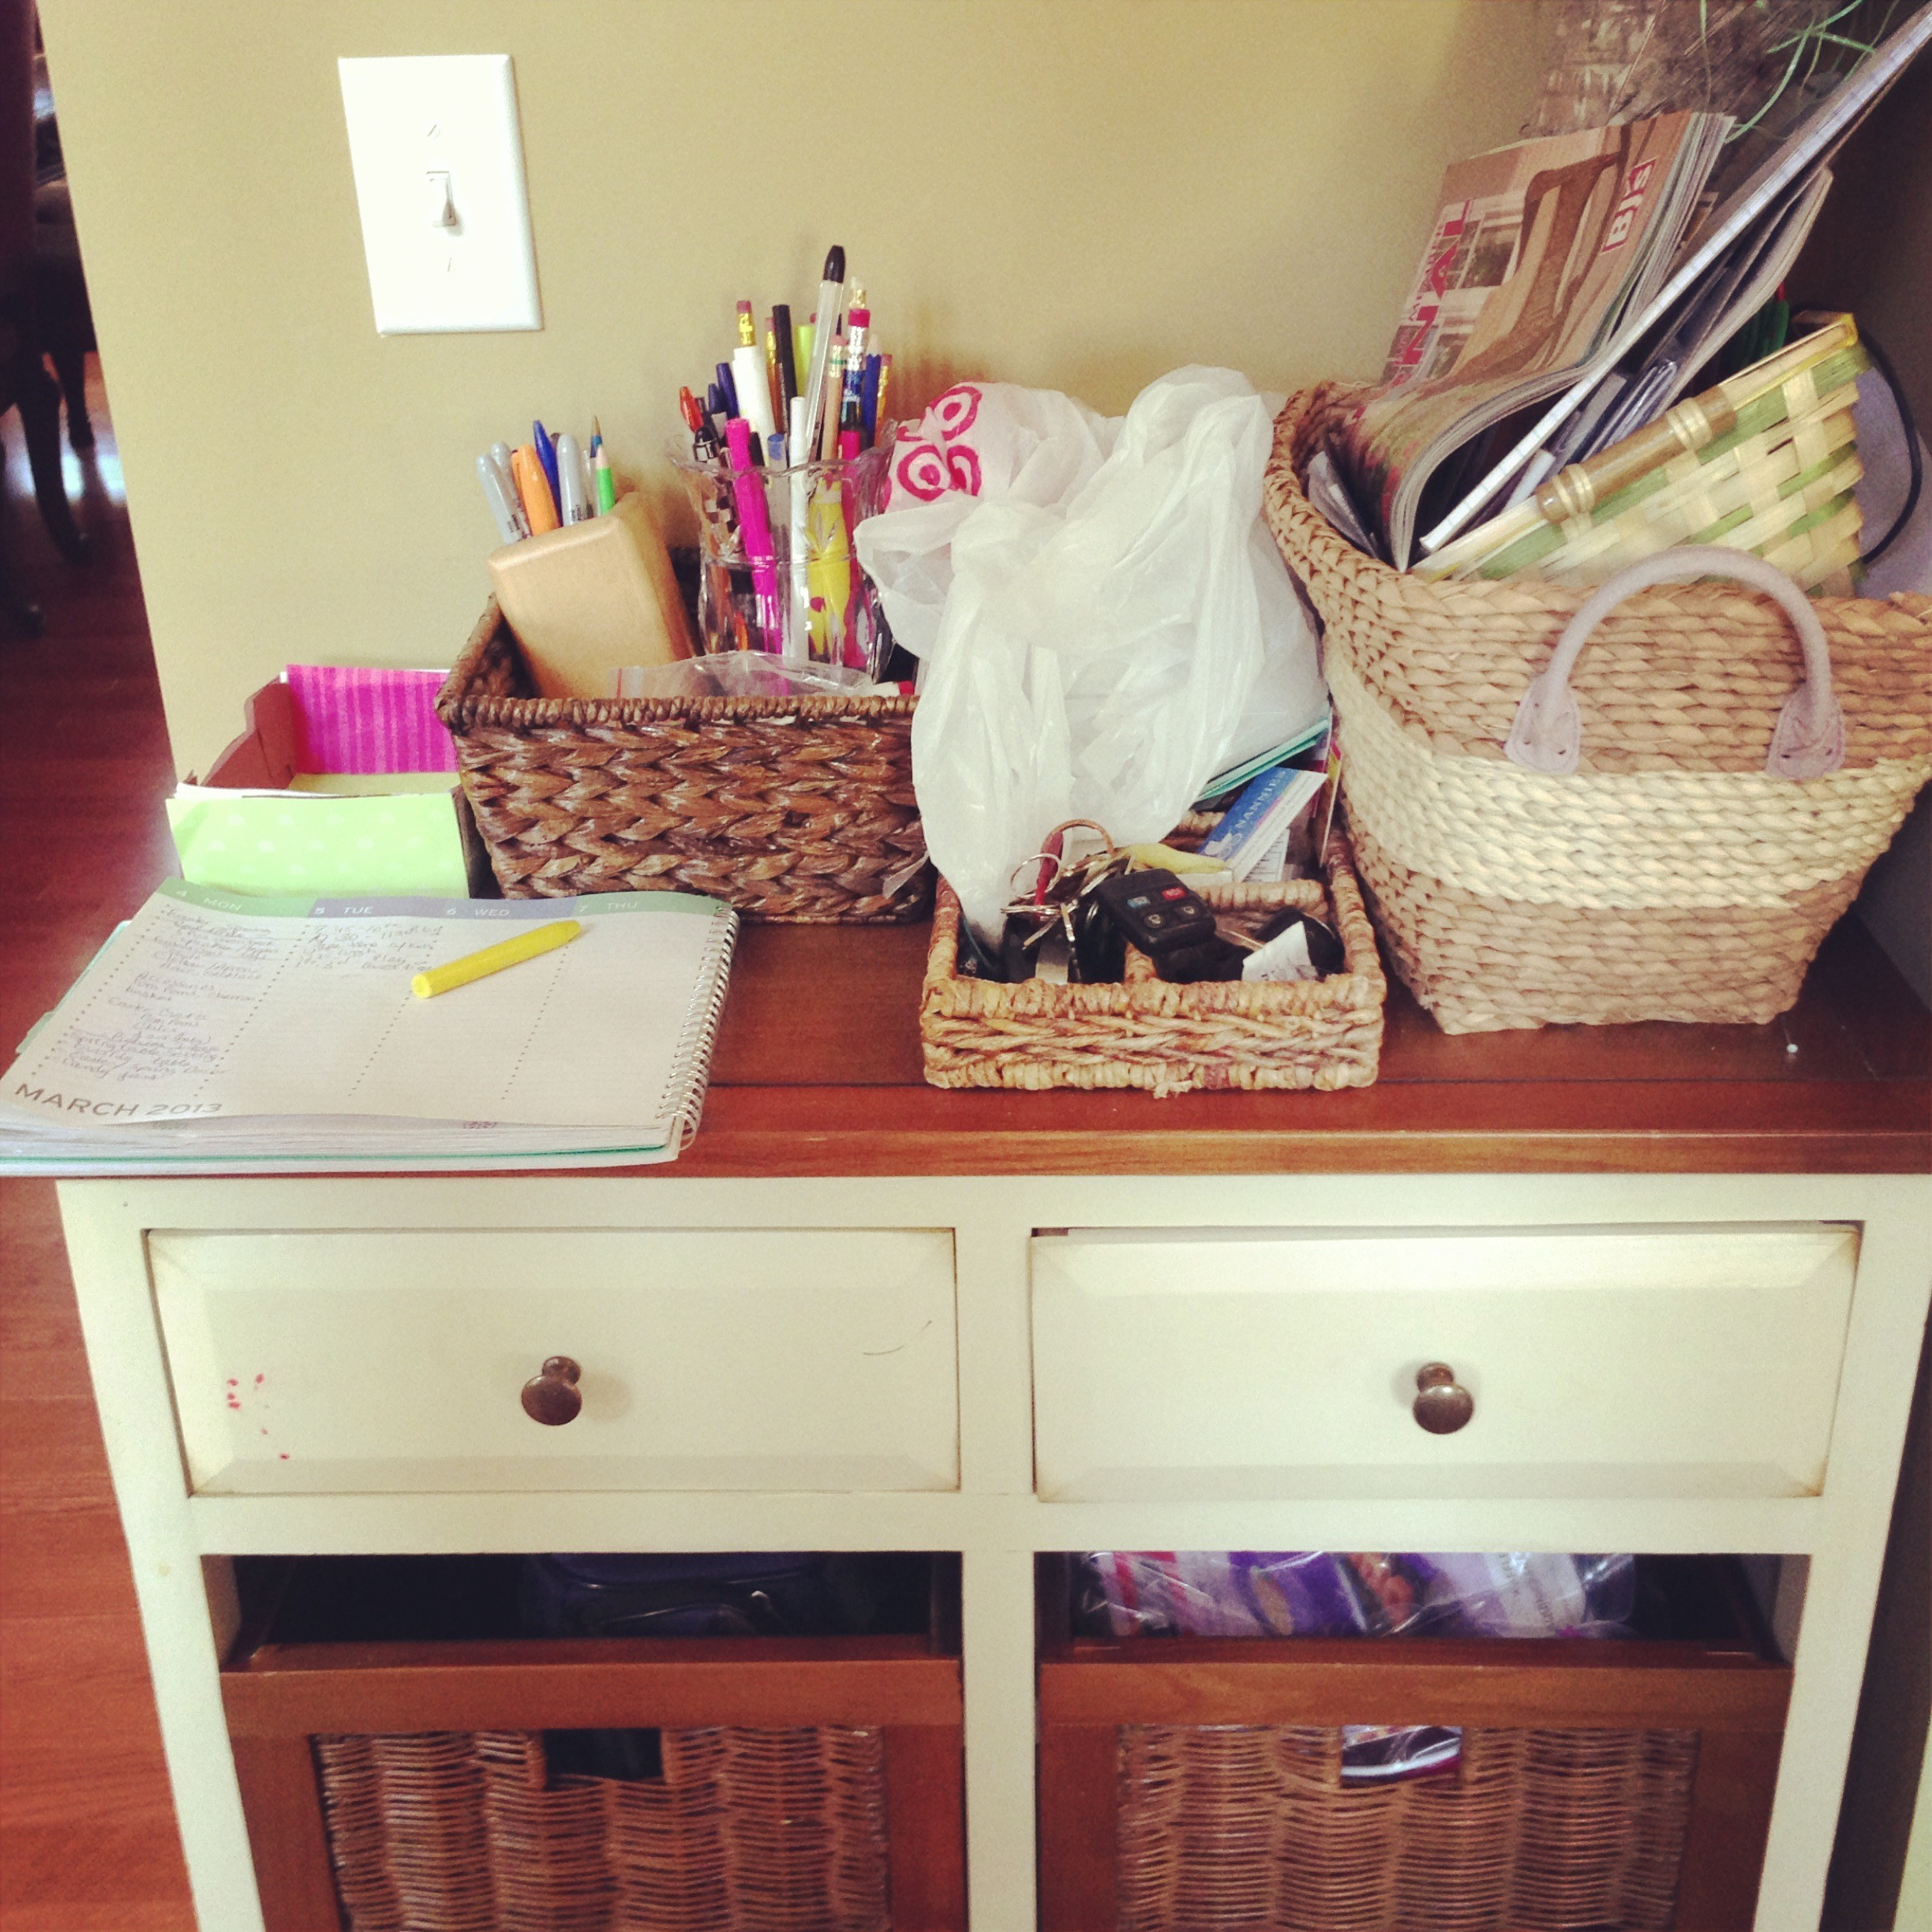 Organizing mail station in kitchen on storage ideas, mail art ideas, mail sorting ideas, organization for mail keys and ideas, organize mail office ideas, mail storage solutions,